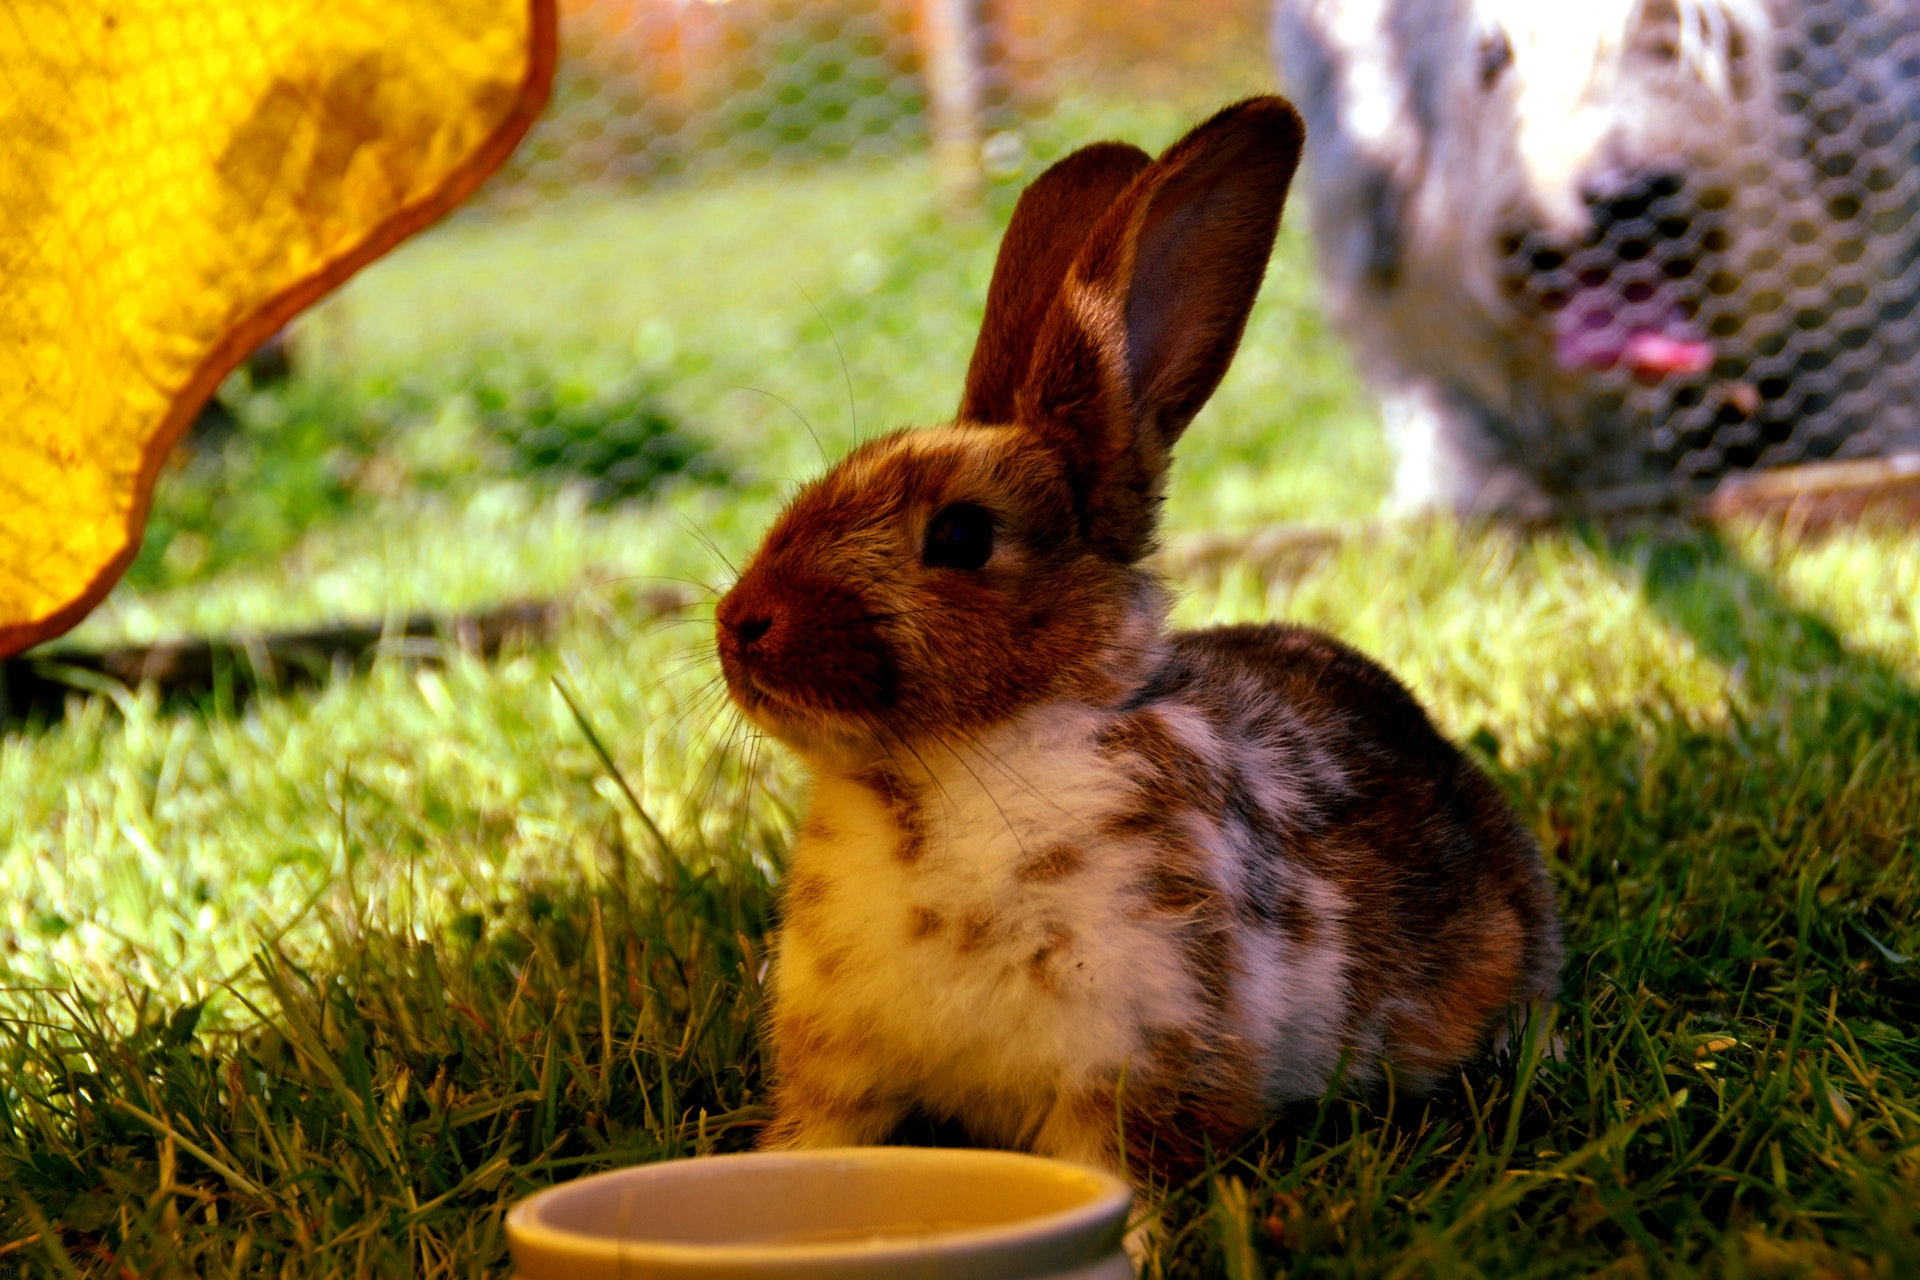 8 Enrichment Activities To Do With Your Rabbit